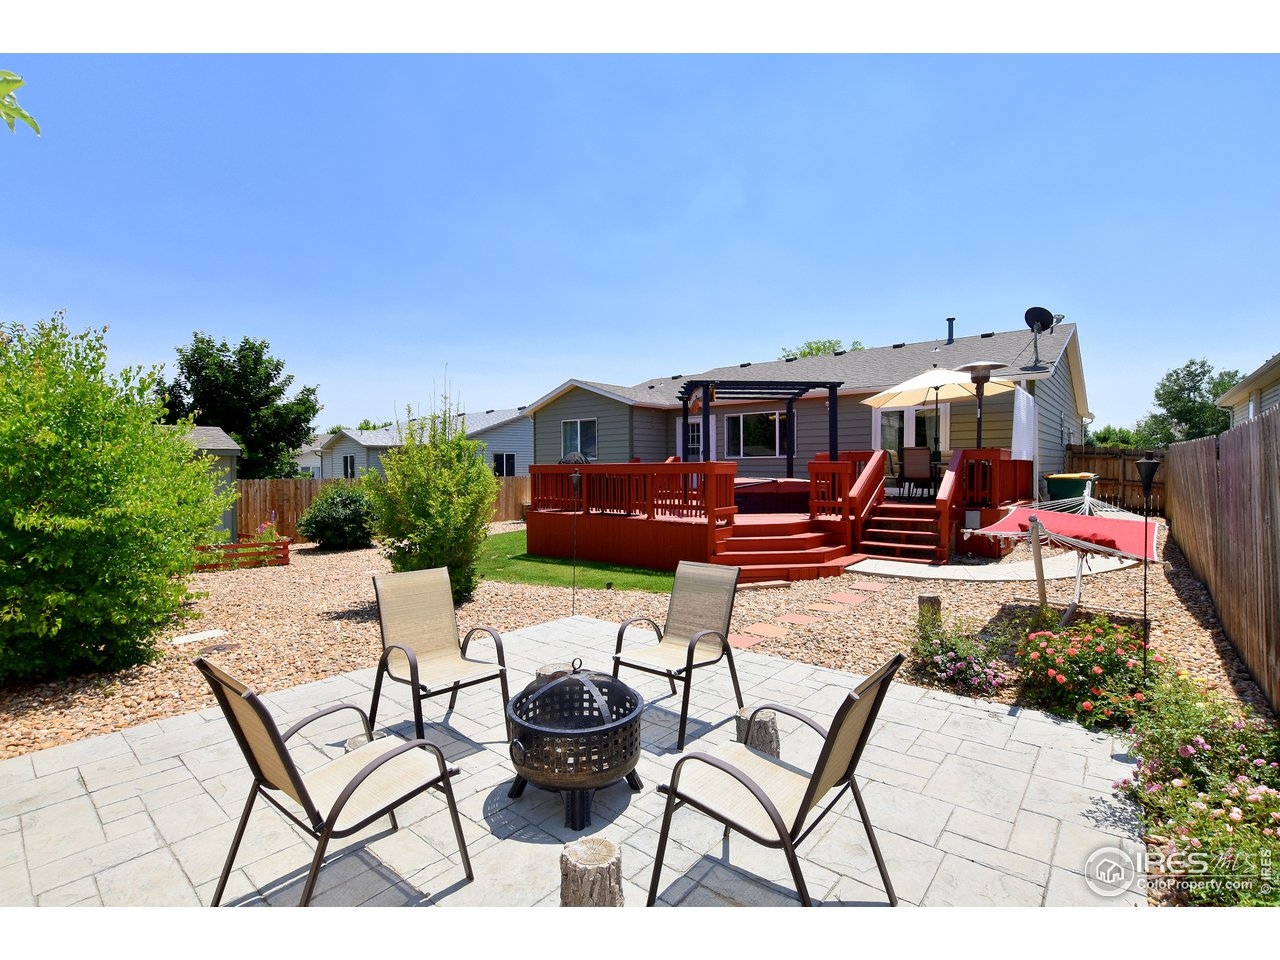 Park Like Fenced Back Yard with Stamped Concrete Patio, Deck with Hot Tub, Trees and Lots of Flowers